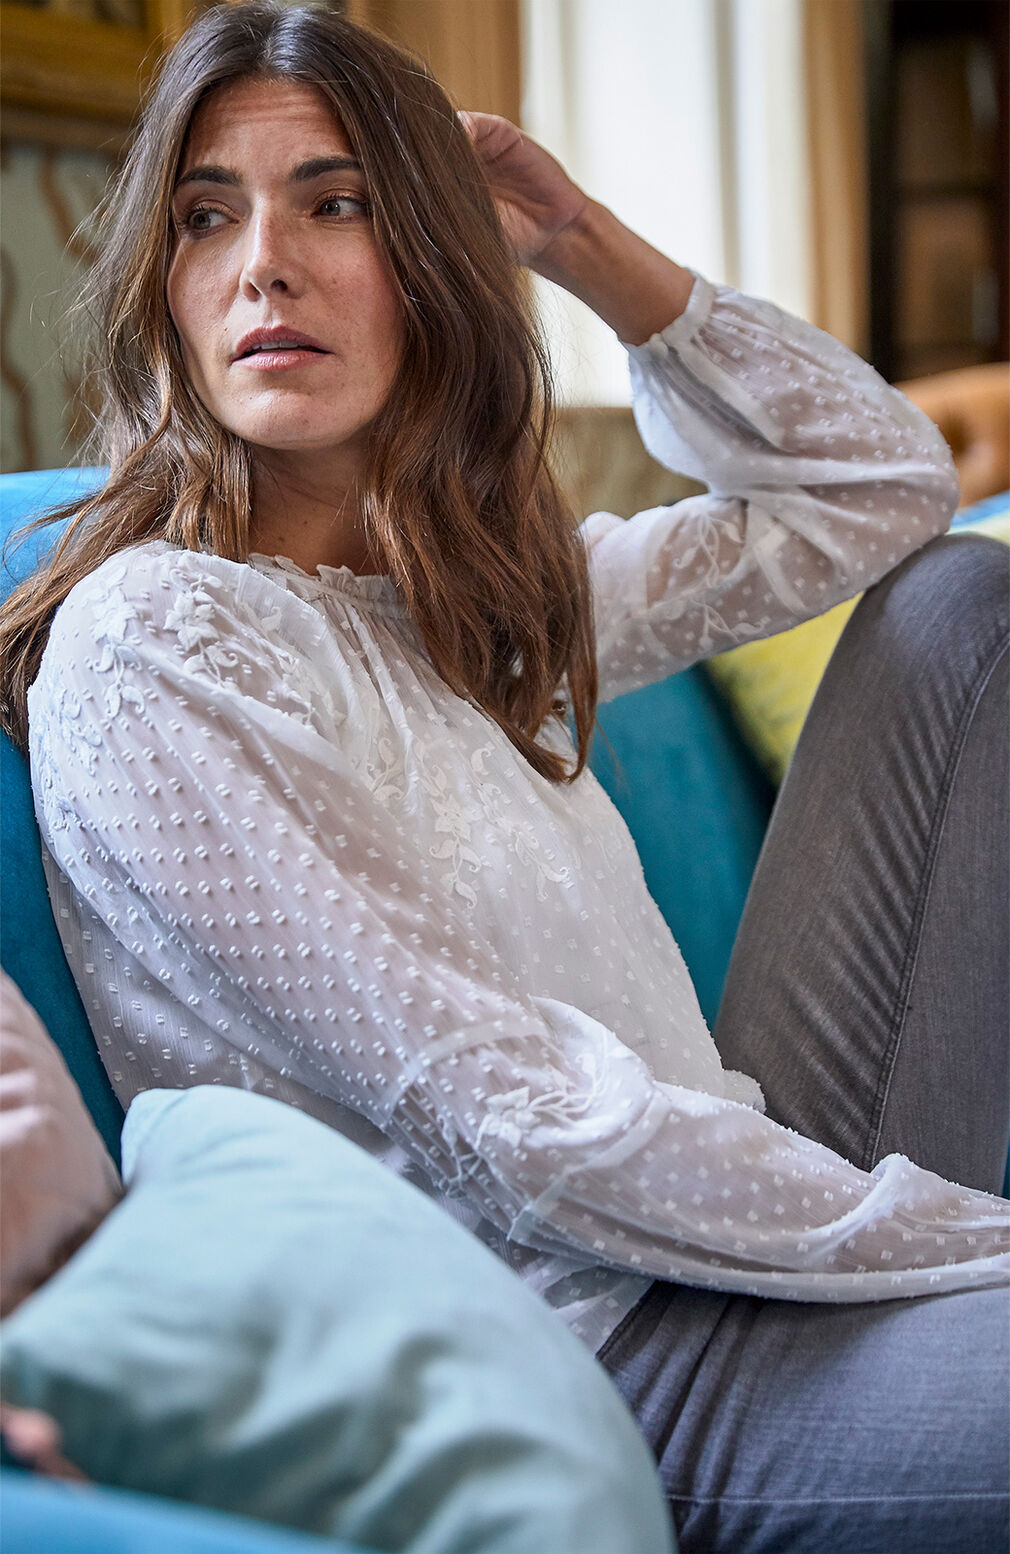 The Blissful Blouse | Embroidered Long Sleeve Blissful Blouse | By Cotton Traders